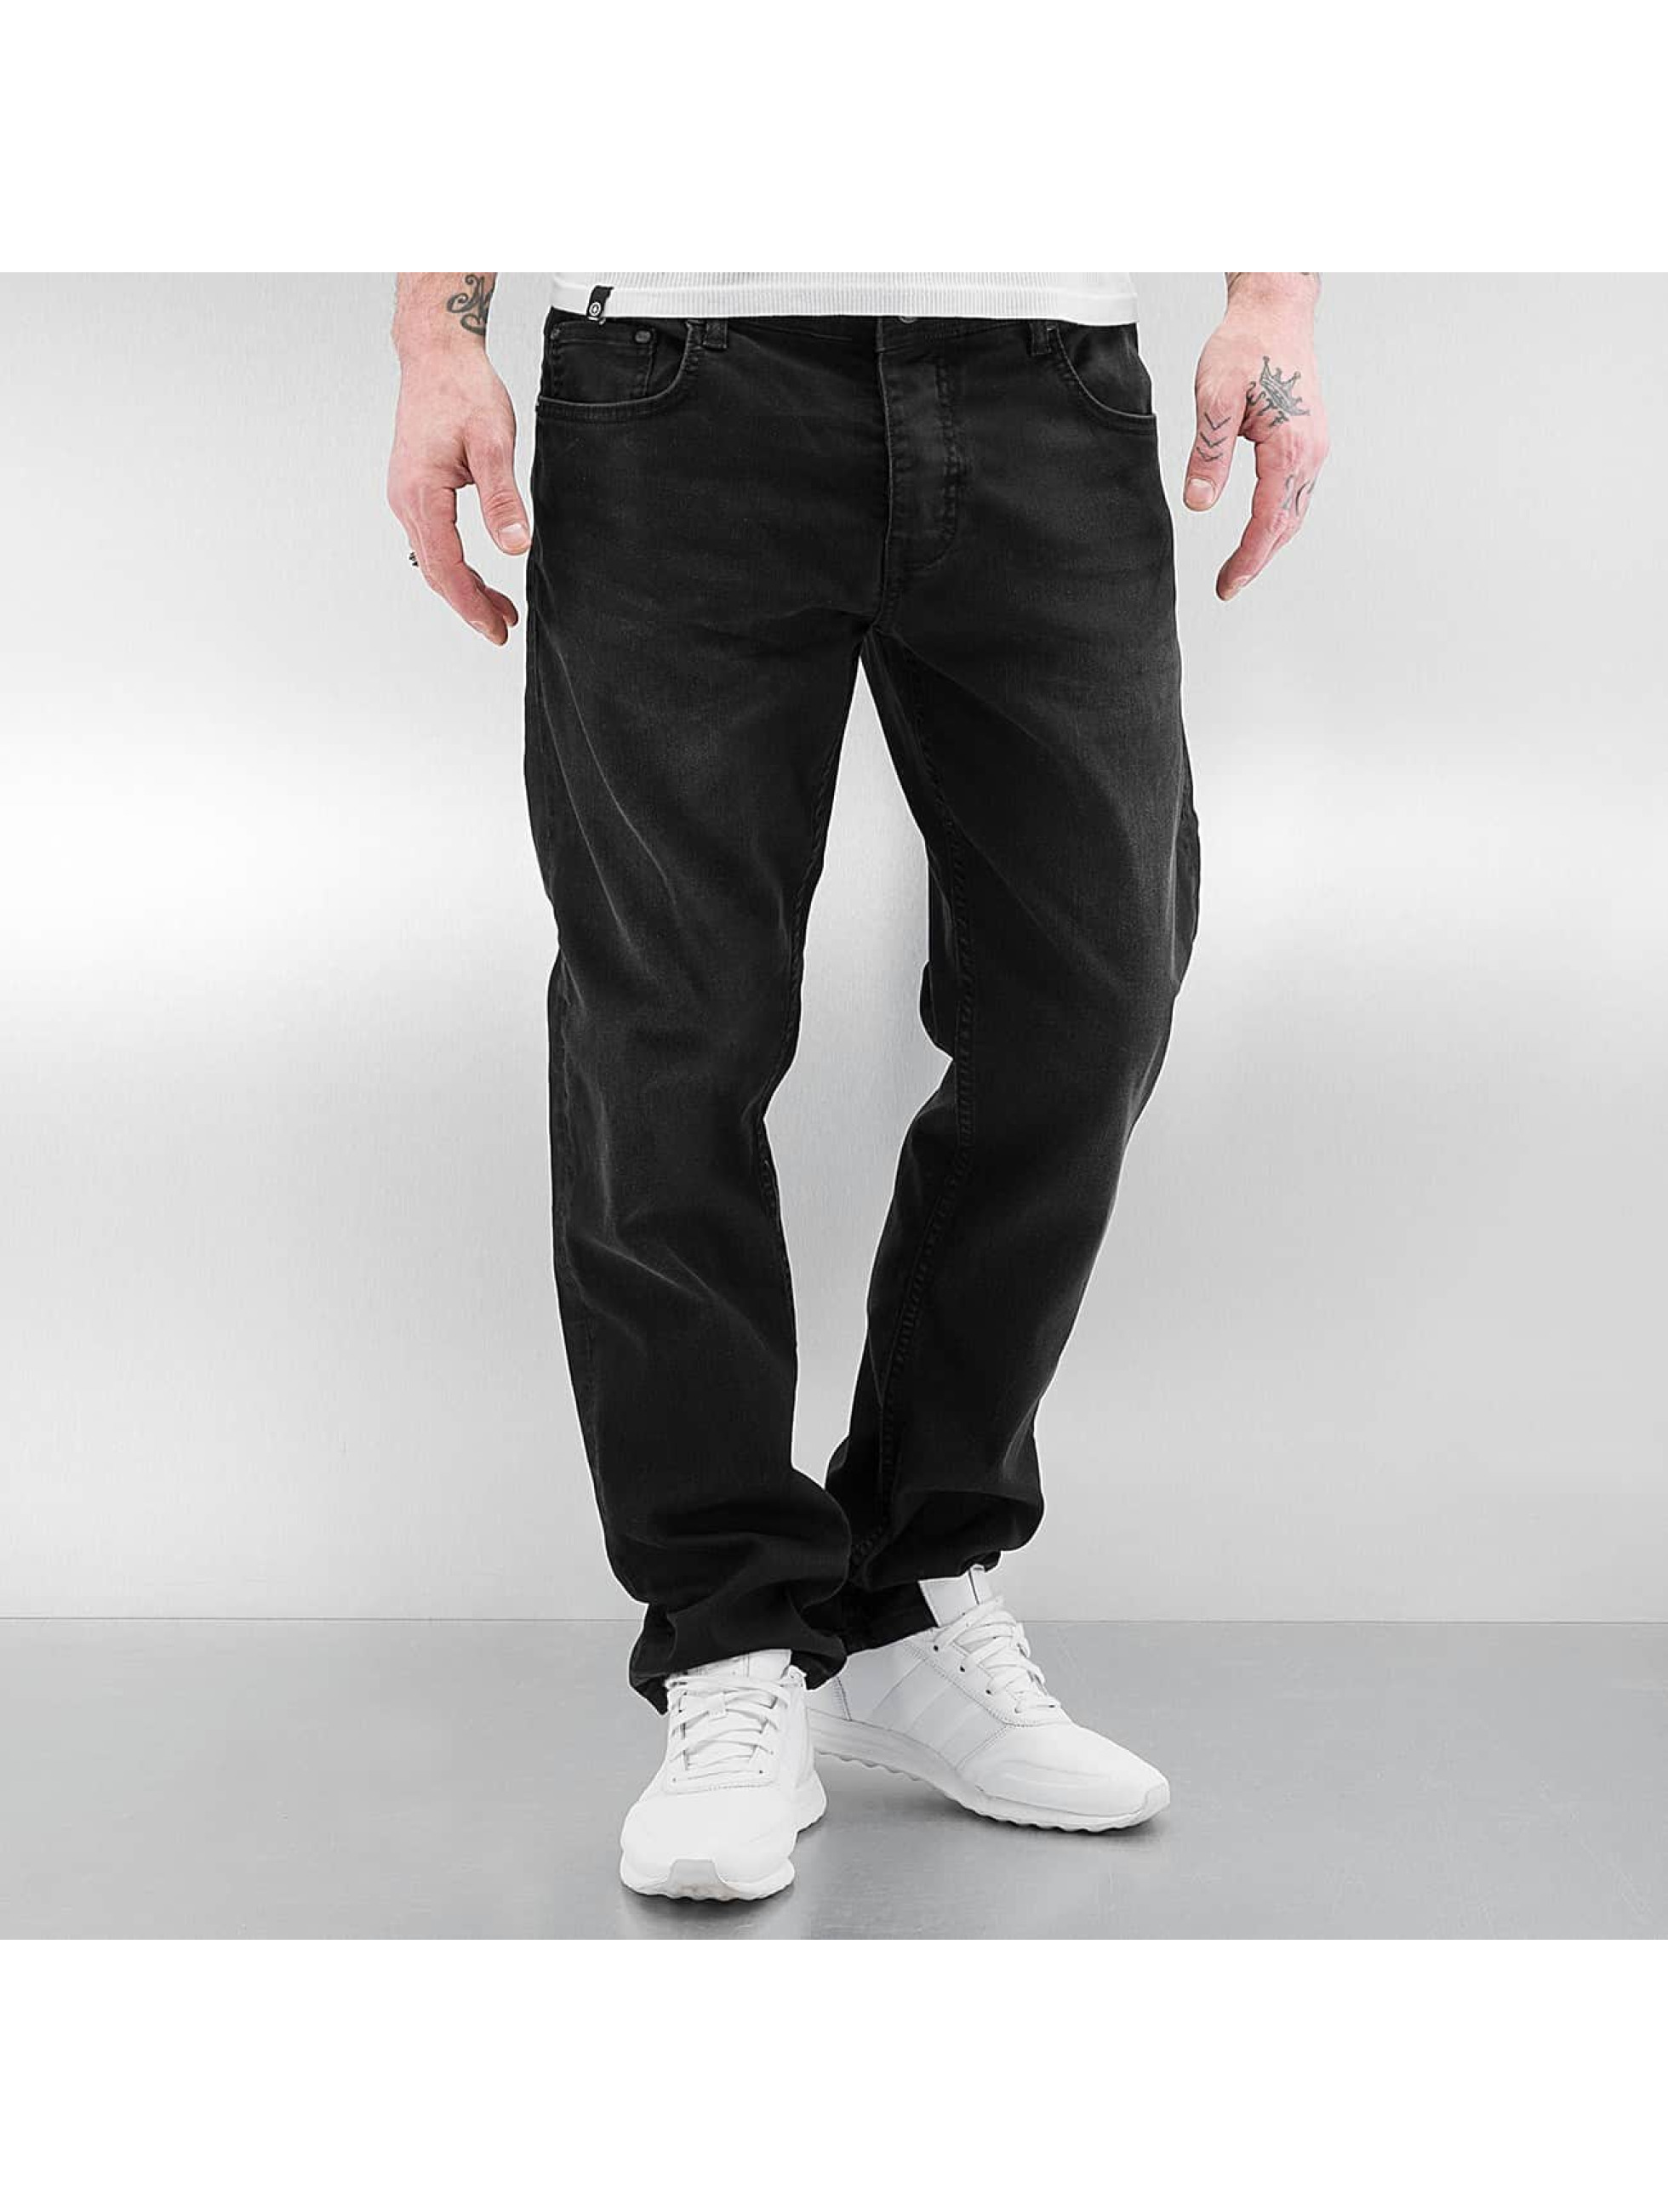 Ecko Unltd. / Straight Fit Jeans Soo in black W 30 L 32